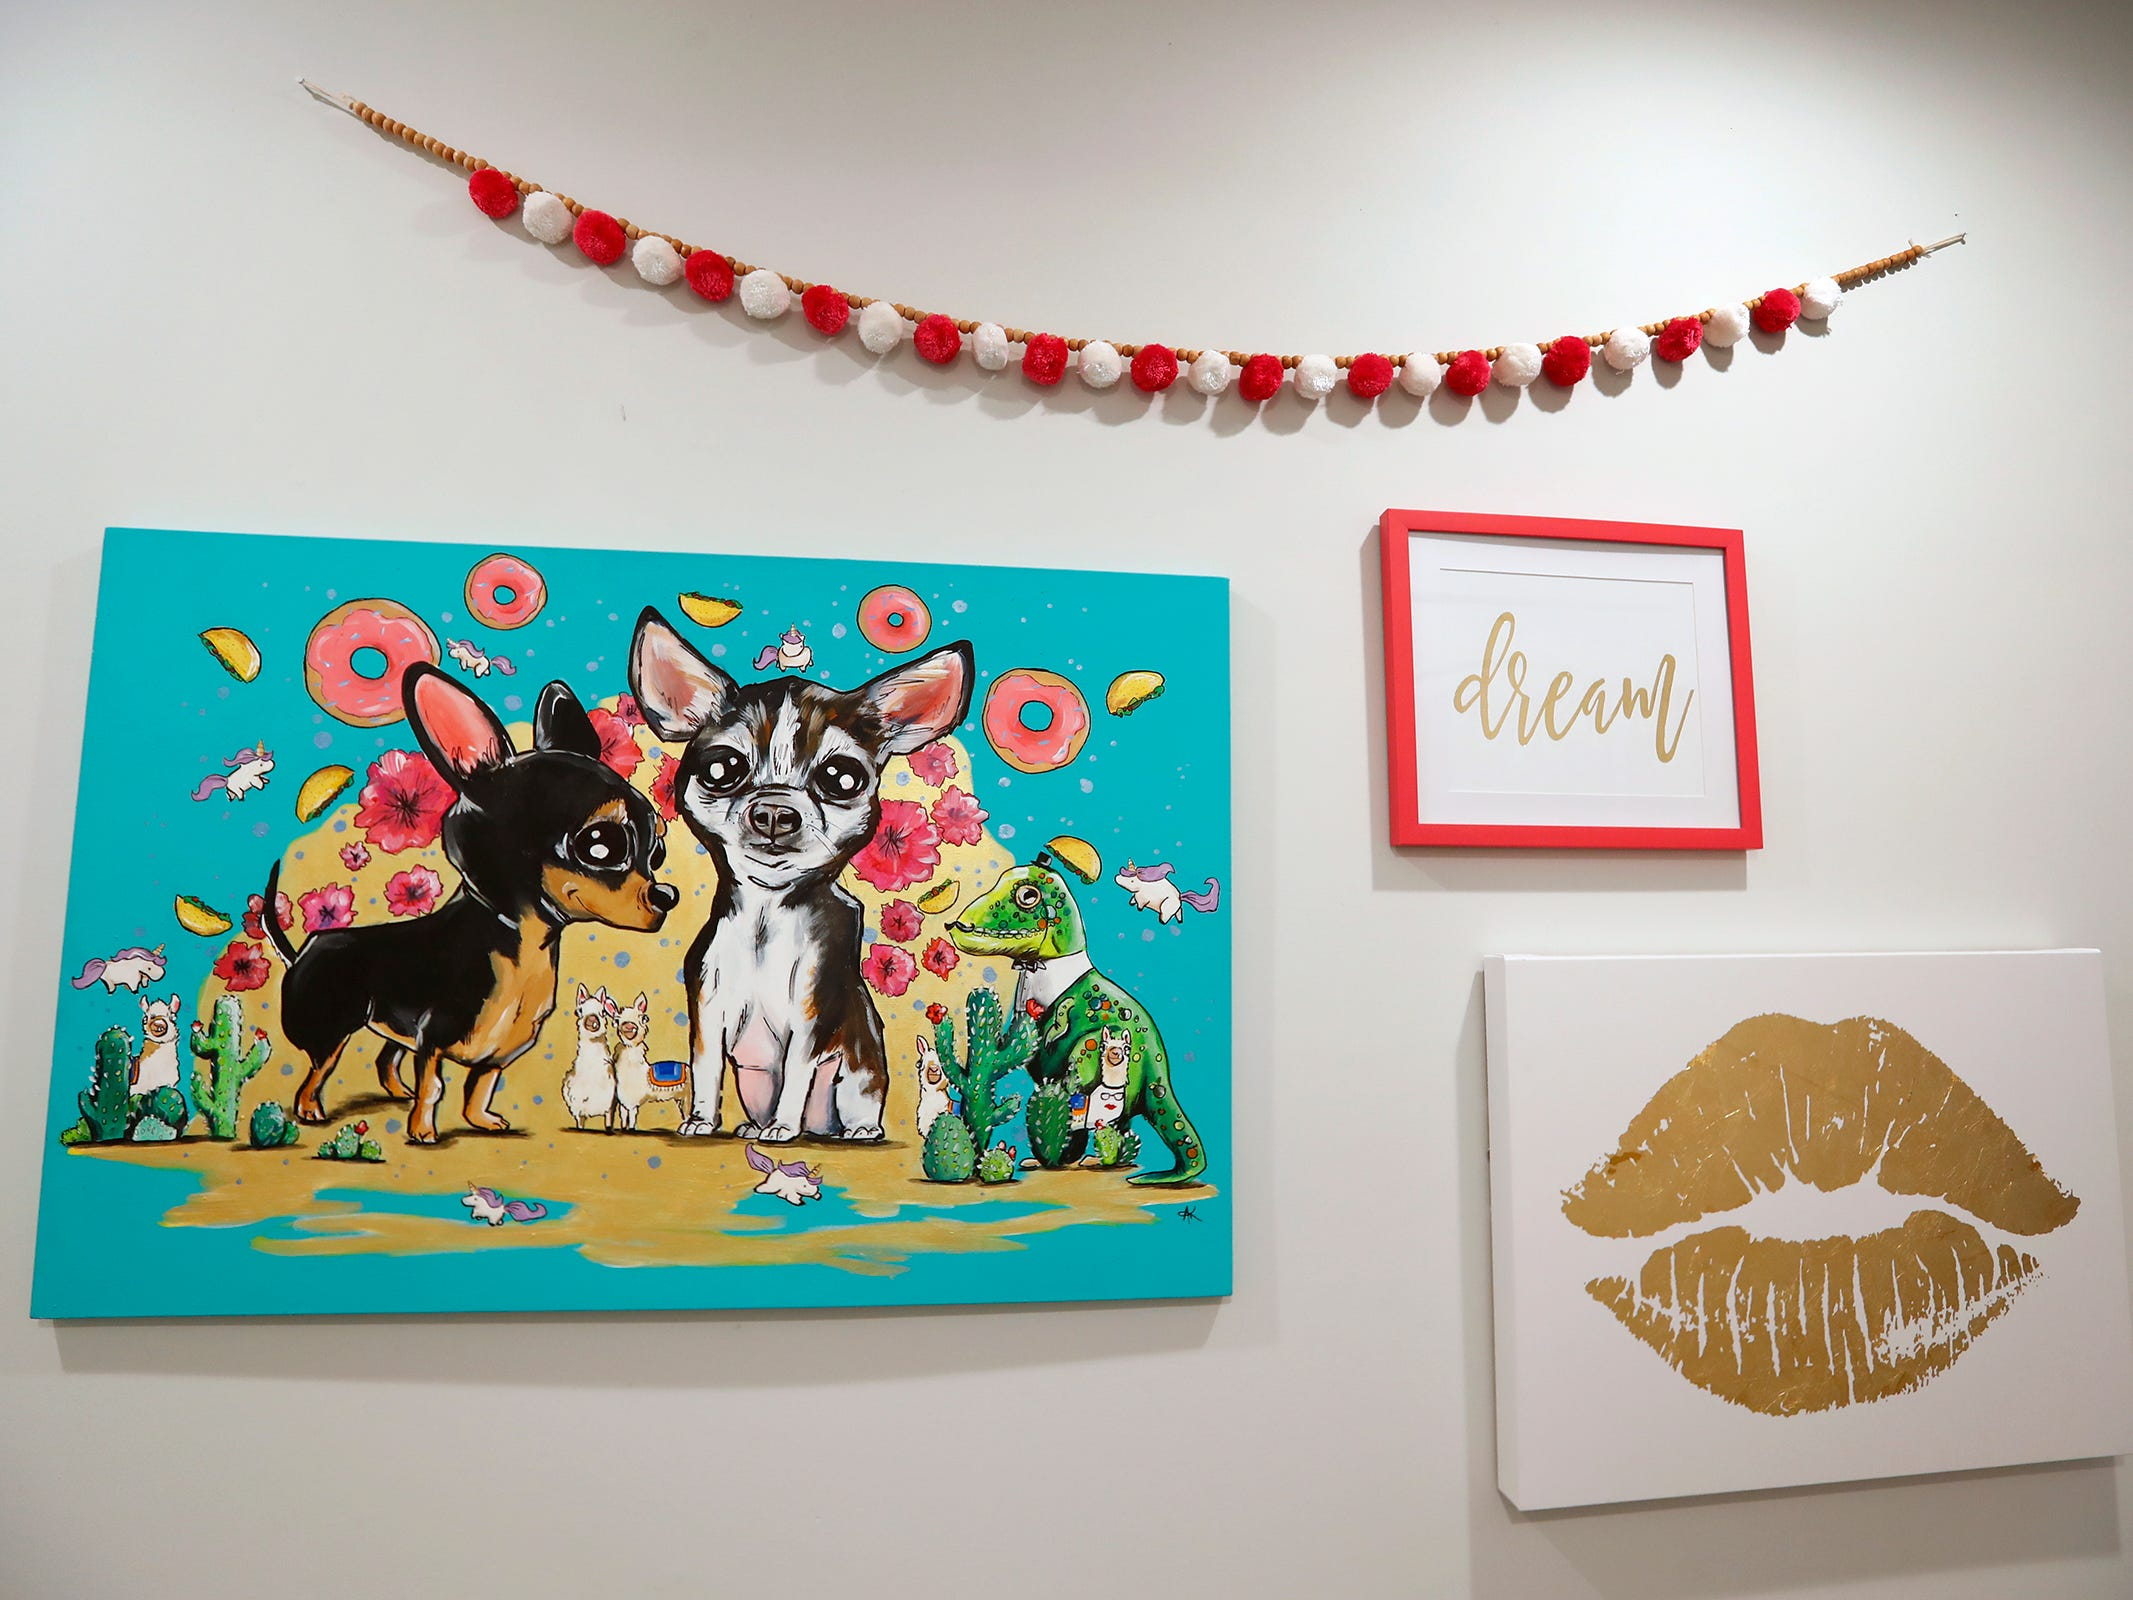 AirBnb owner Felicia Kiesel's dog, Chiquita (Chichi), left, and her mother's dog, Lucy, are portrayed in this personal painting by Amanda Keller, seen in the AirBnb at 804 N. Keystone Ave., Monday, Dec. 3, 2018.